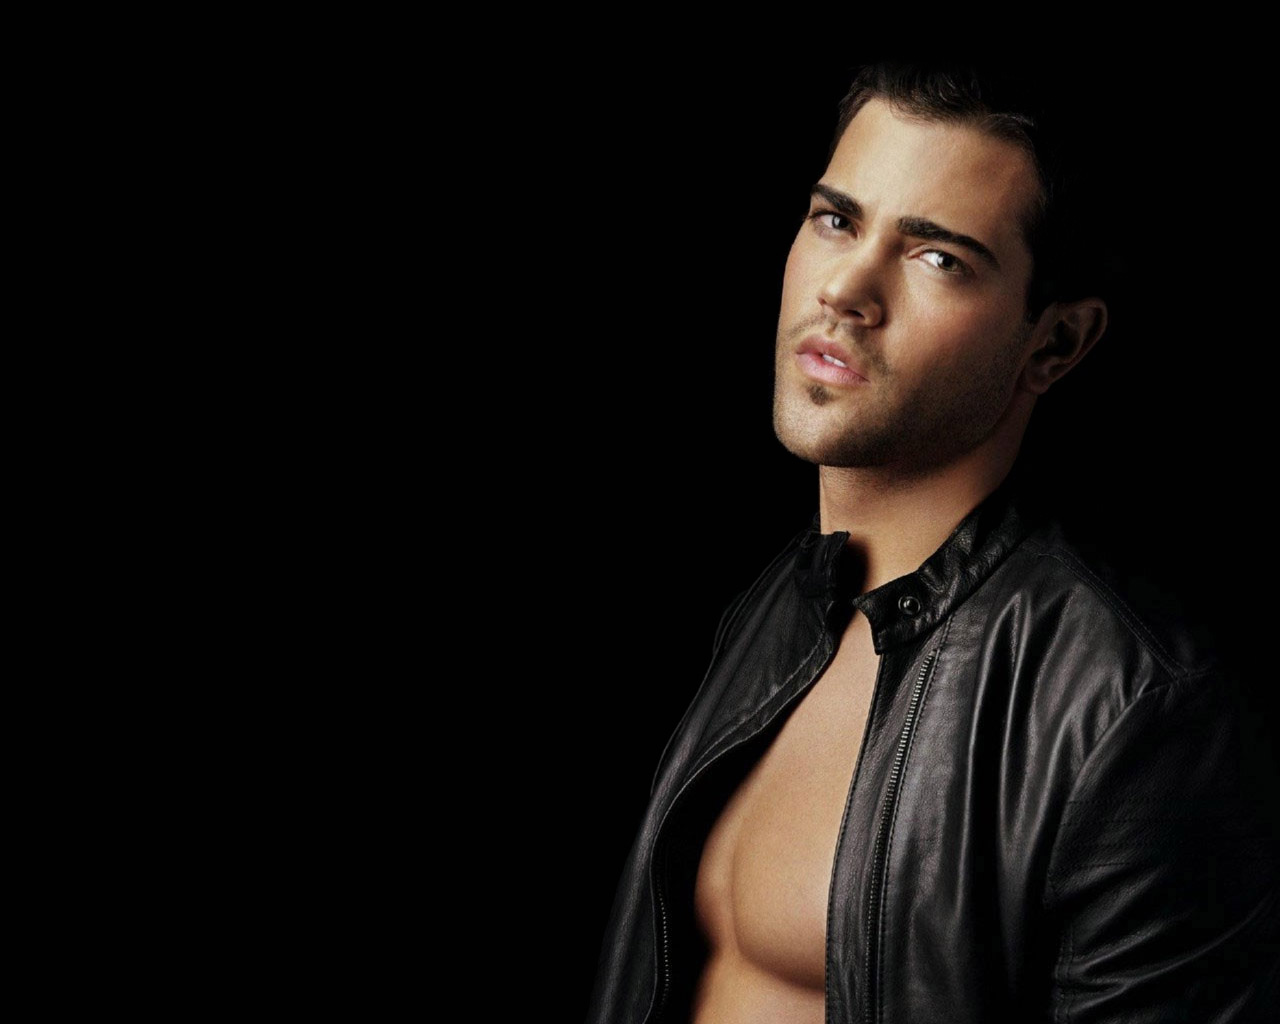 jesse metcalfe photos tv series posters and cast On men wallpaper